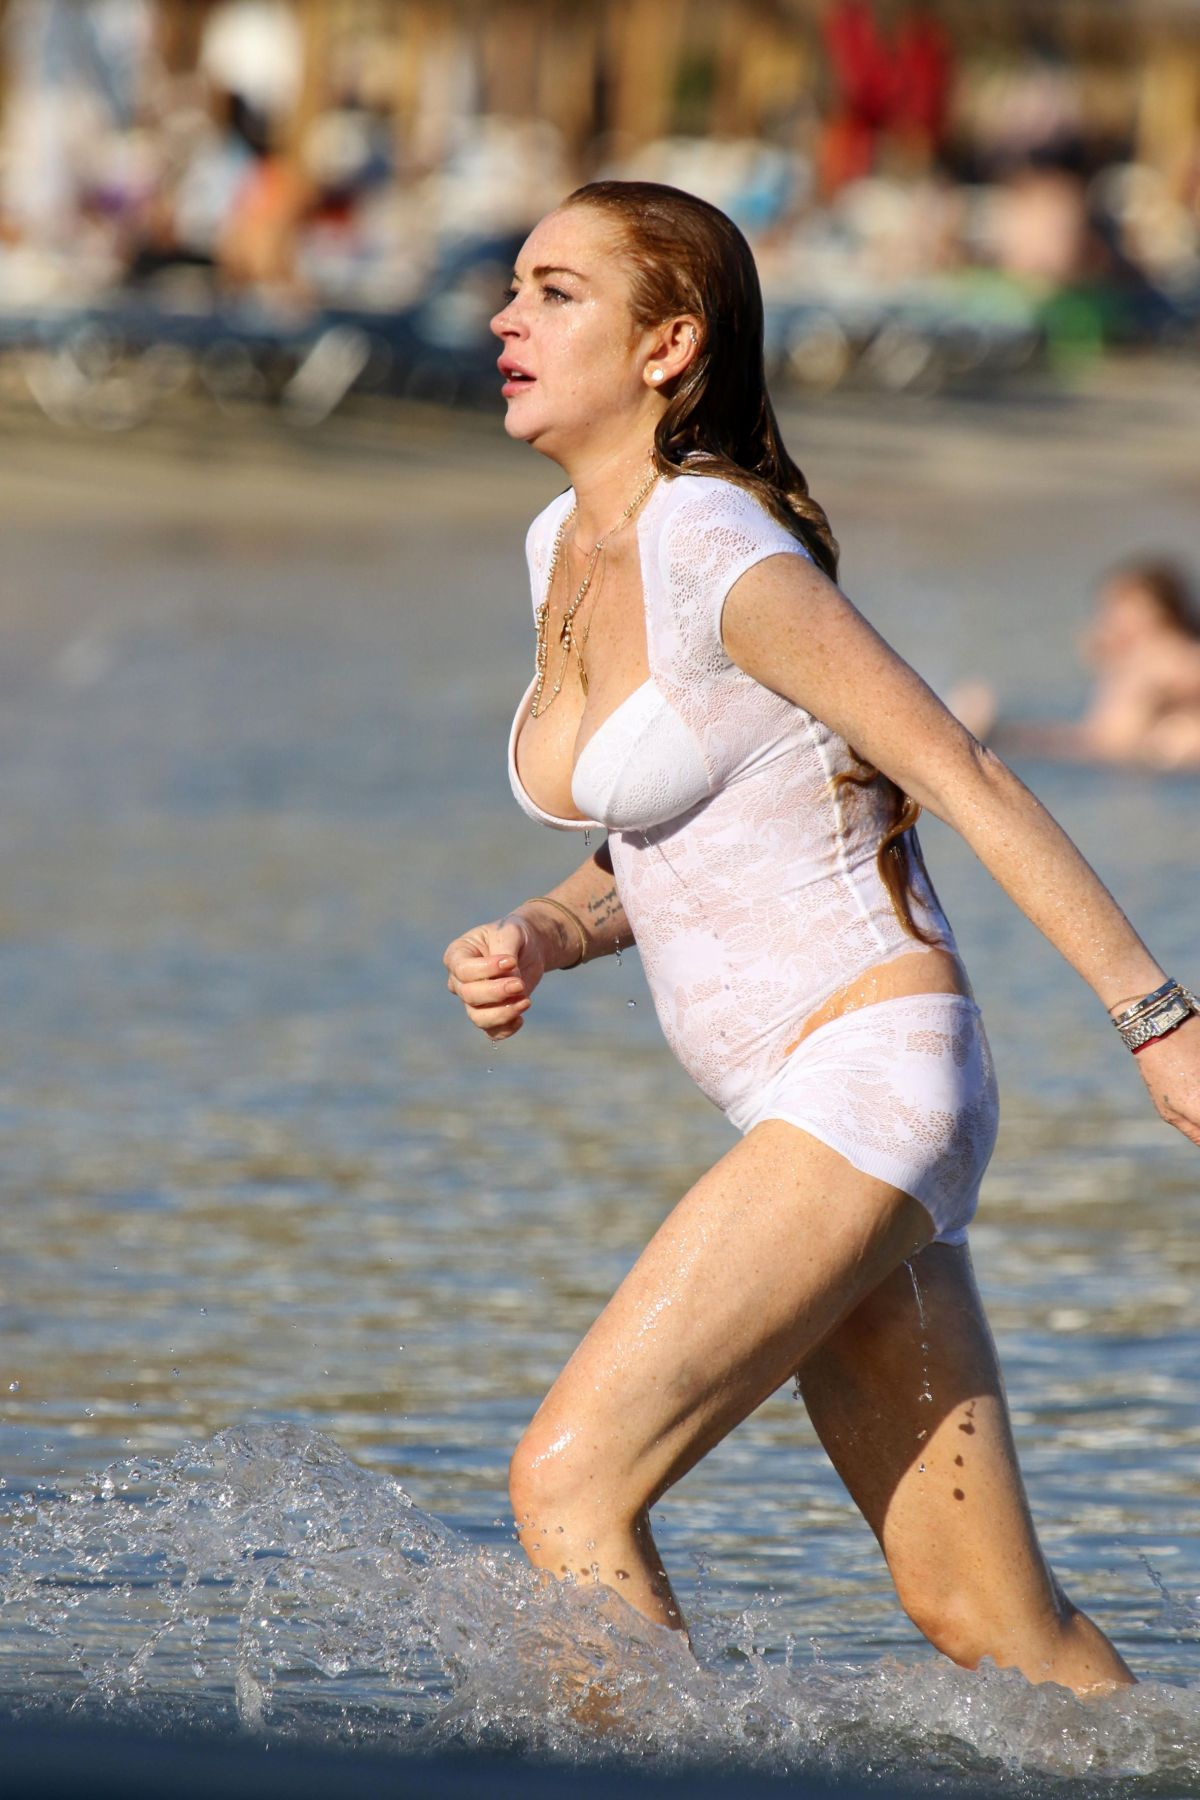 Fappening Lindsay Lohan nude photos 2019